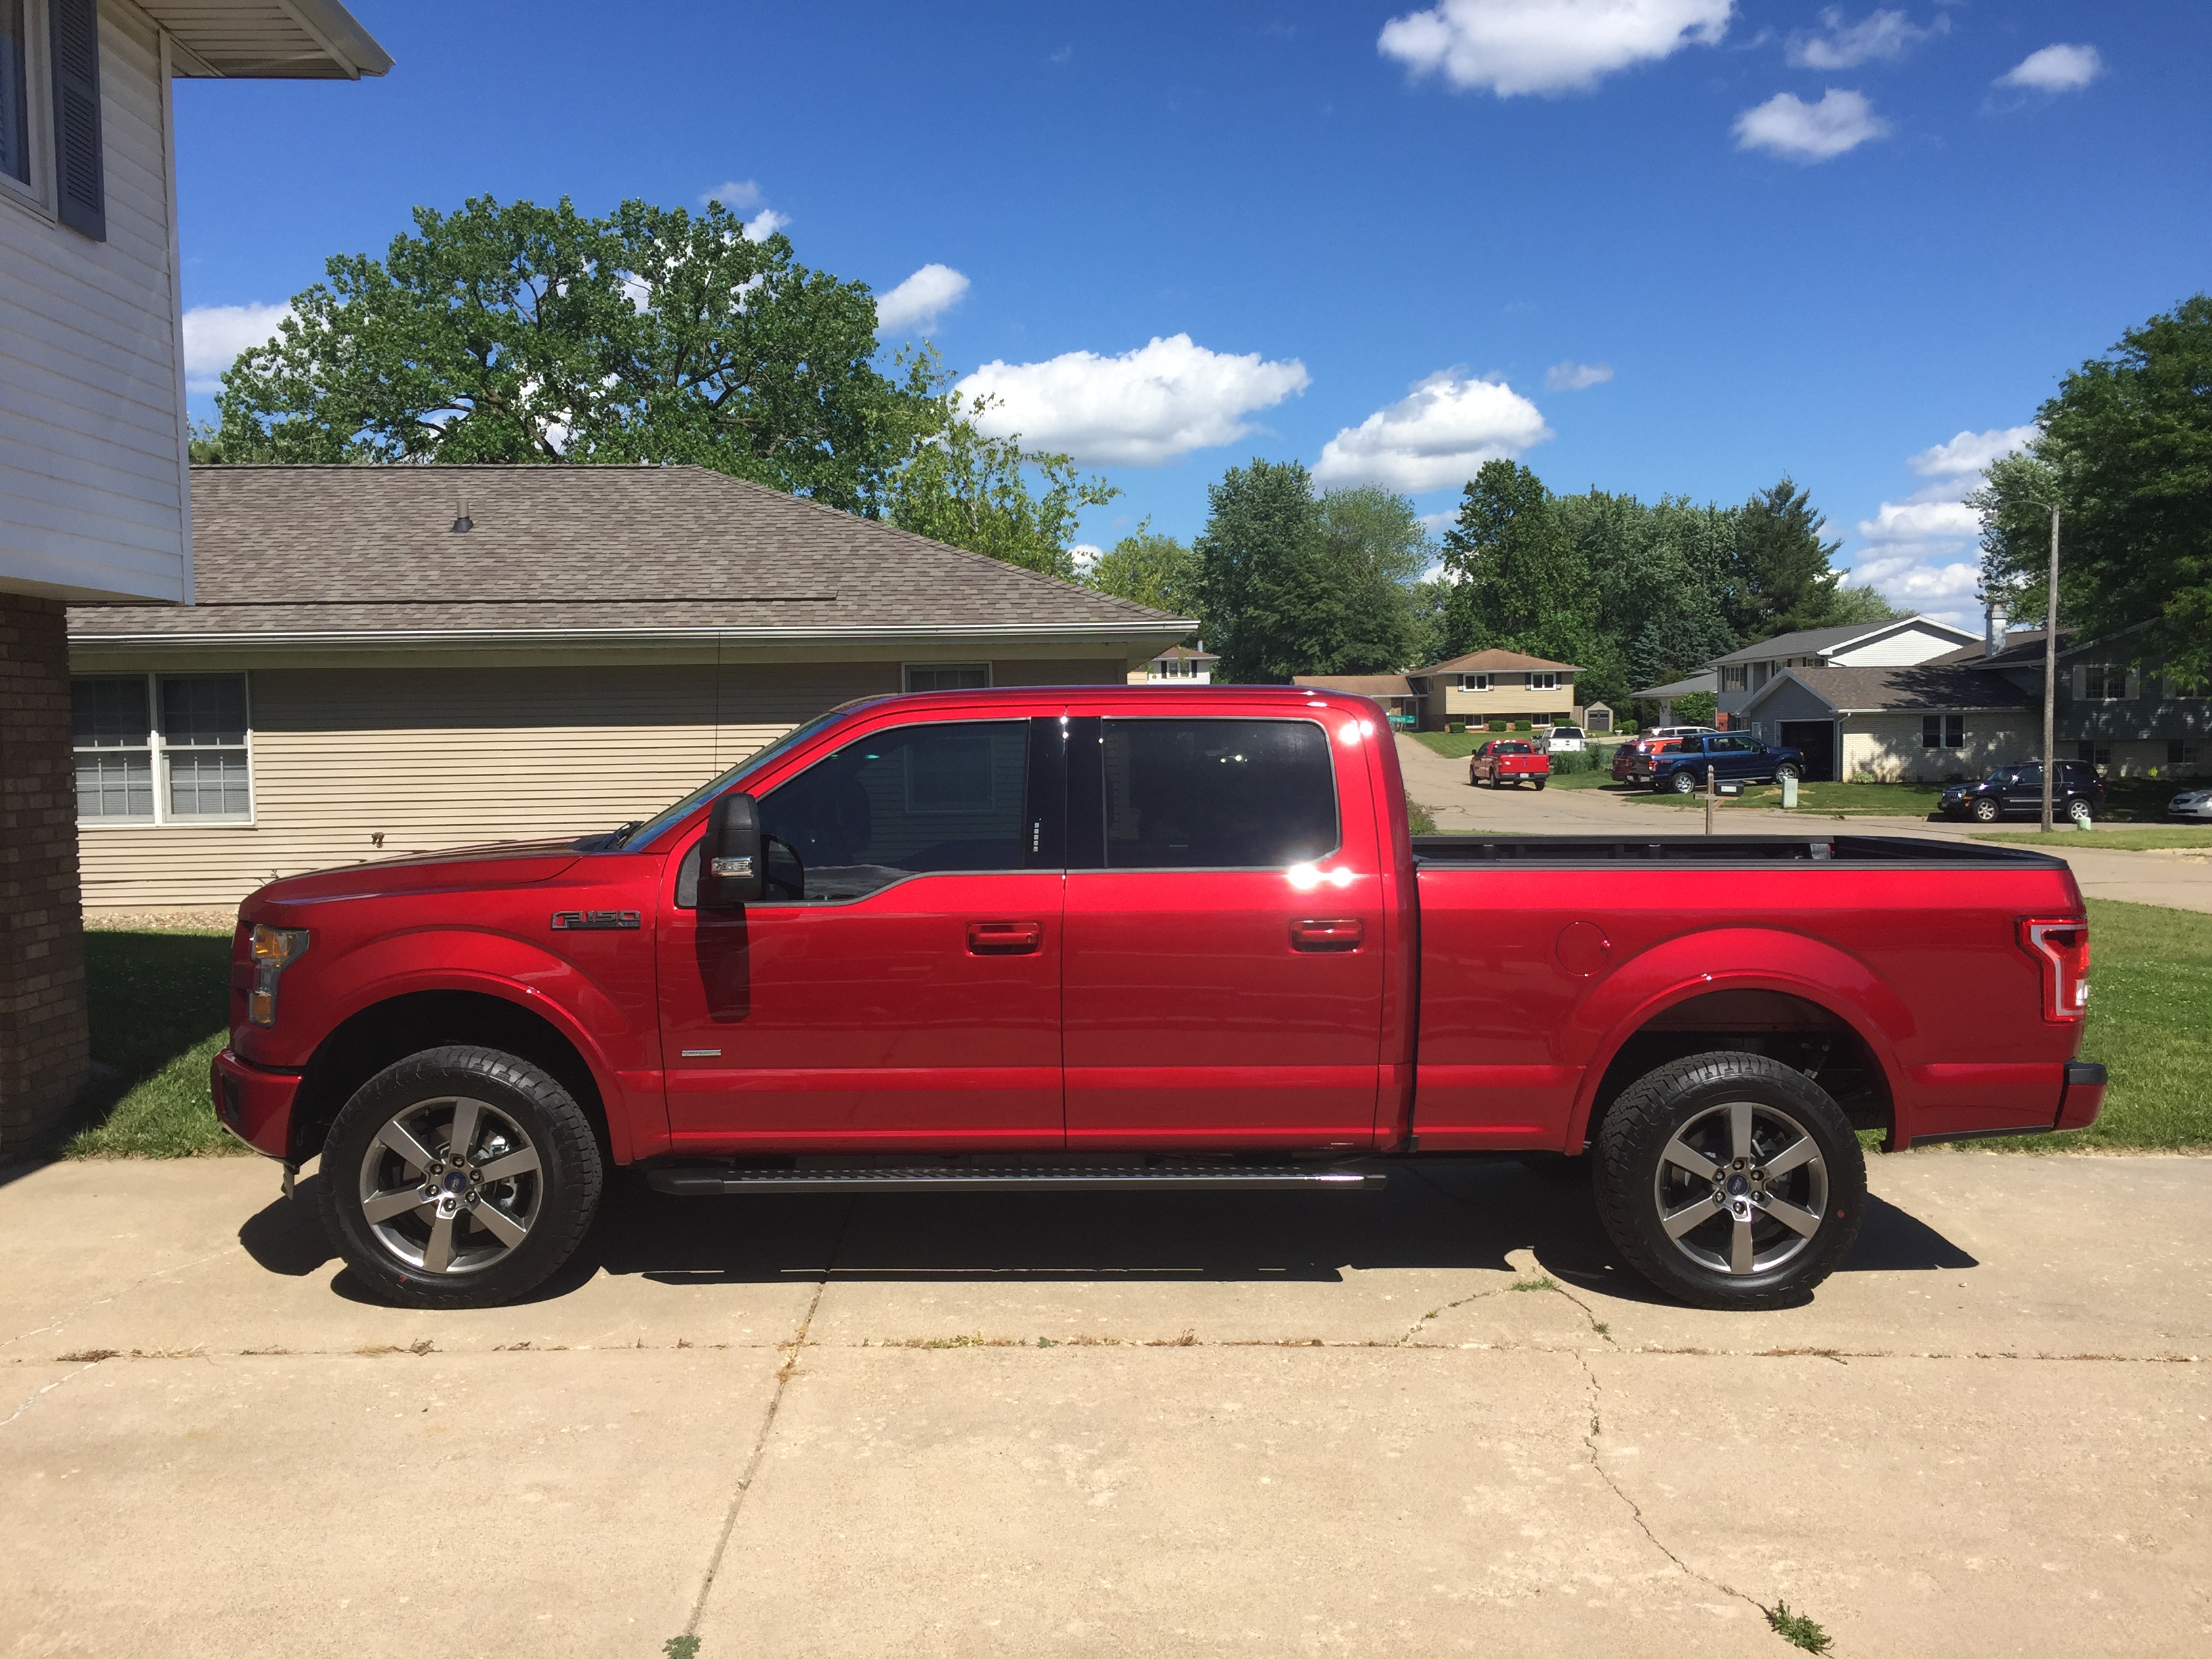 2016 f150 rough country 2 5 leveling kit at least thats what they advertise